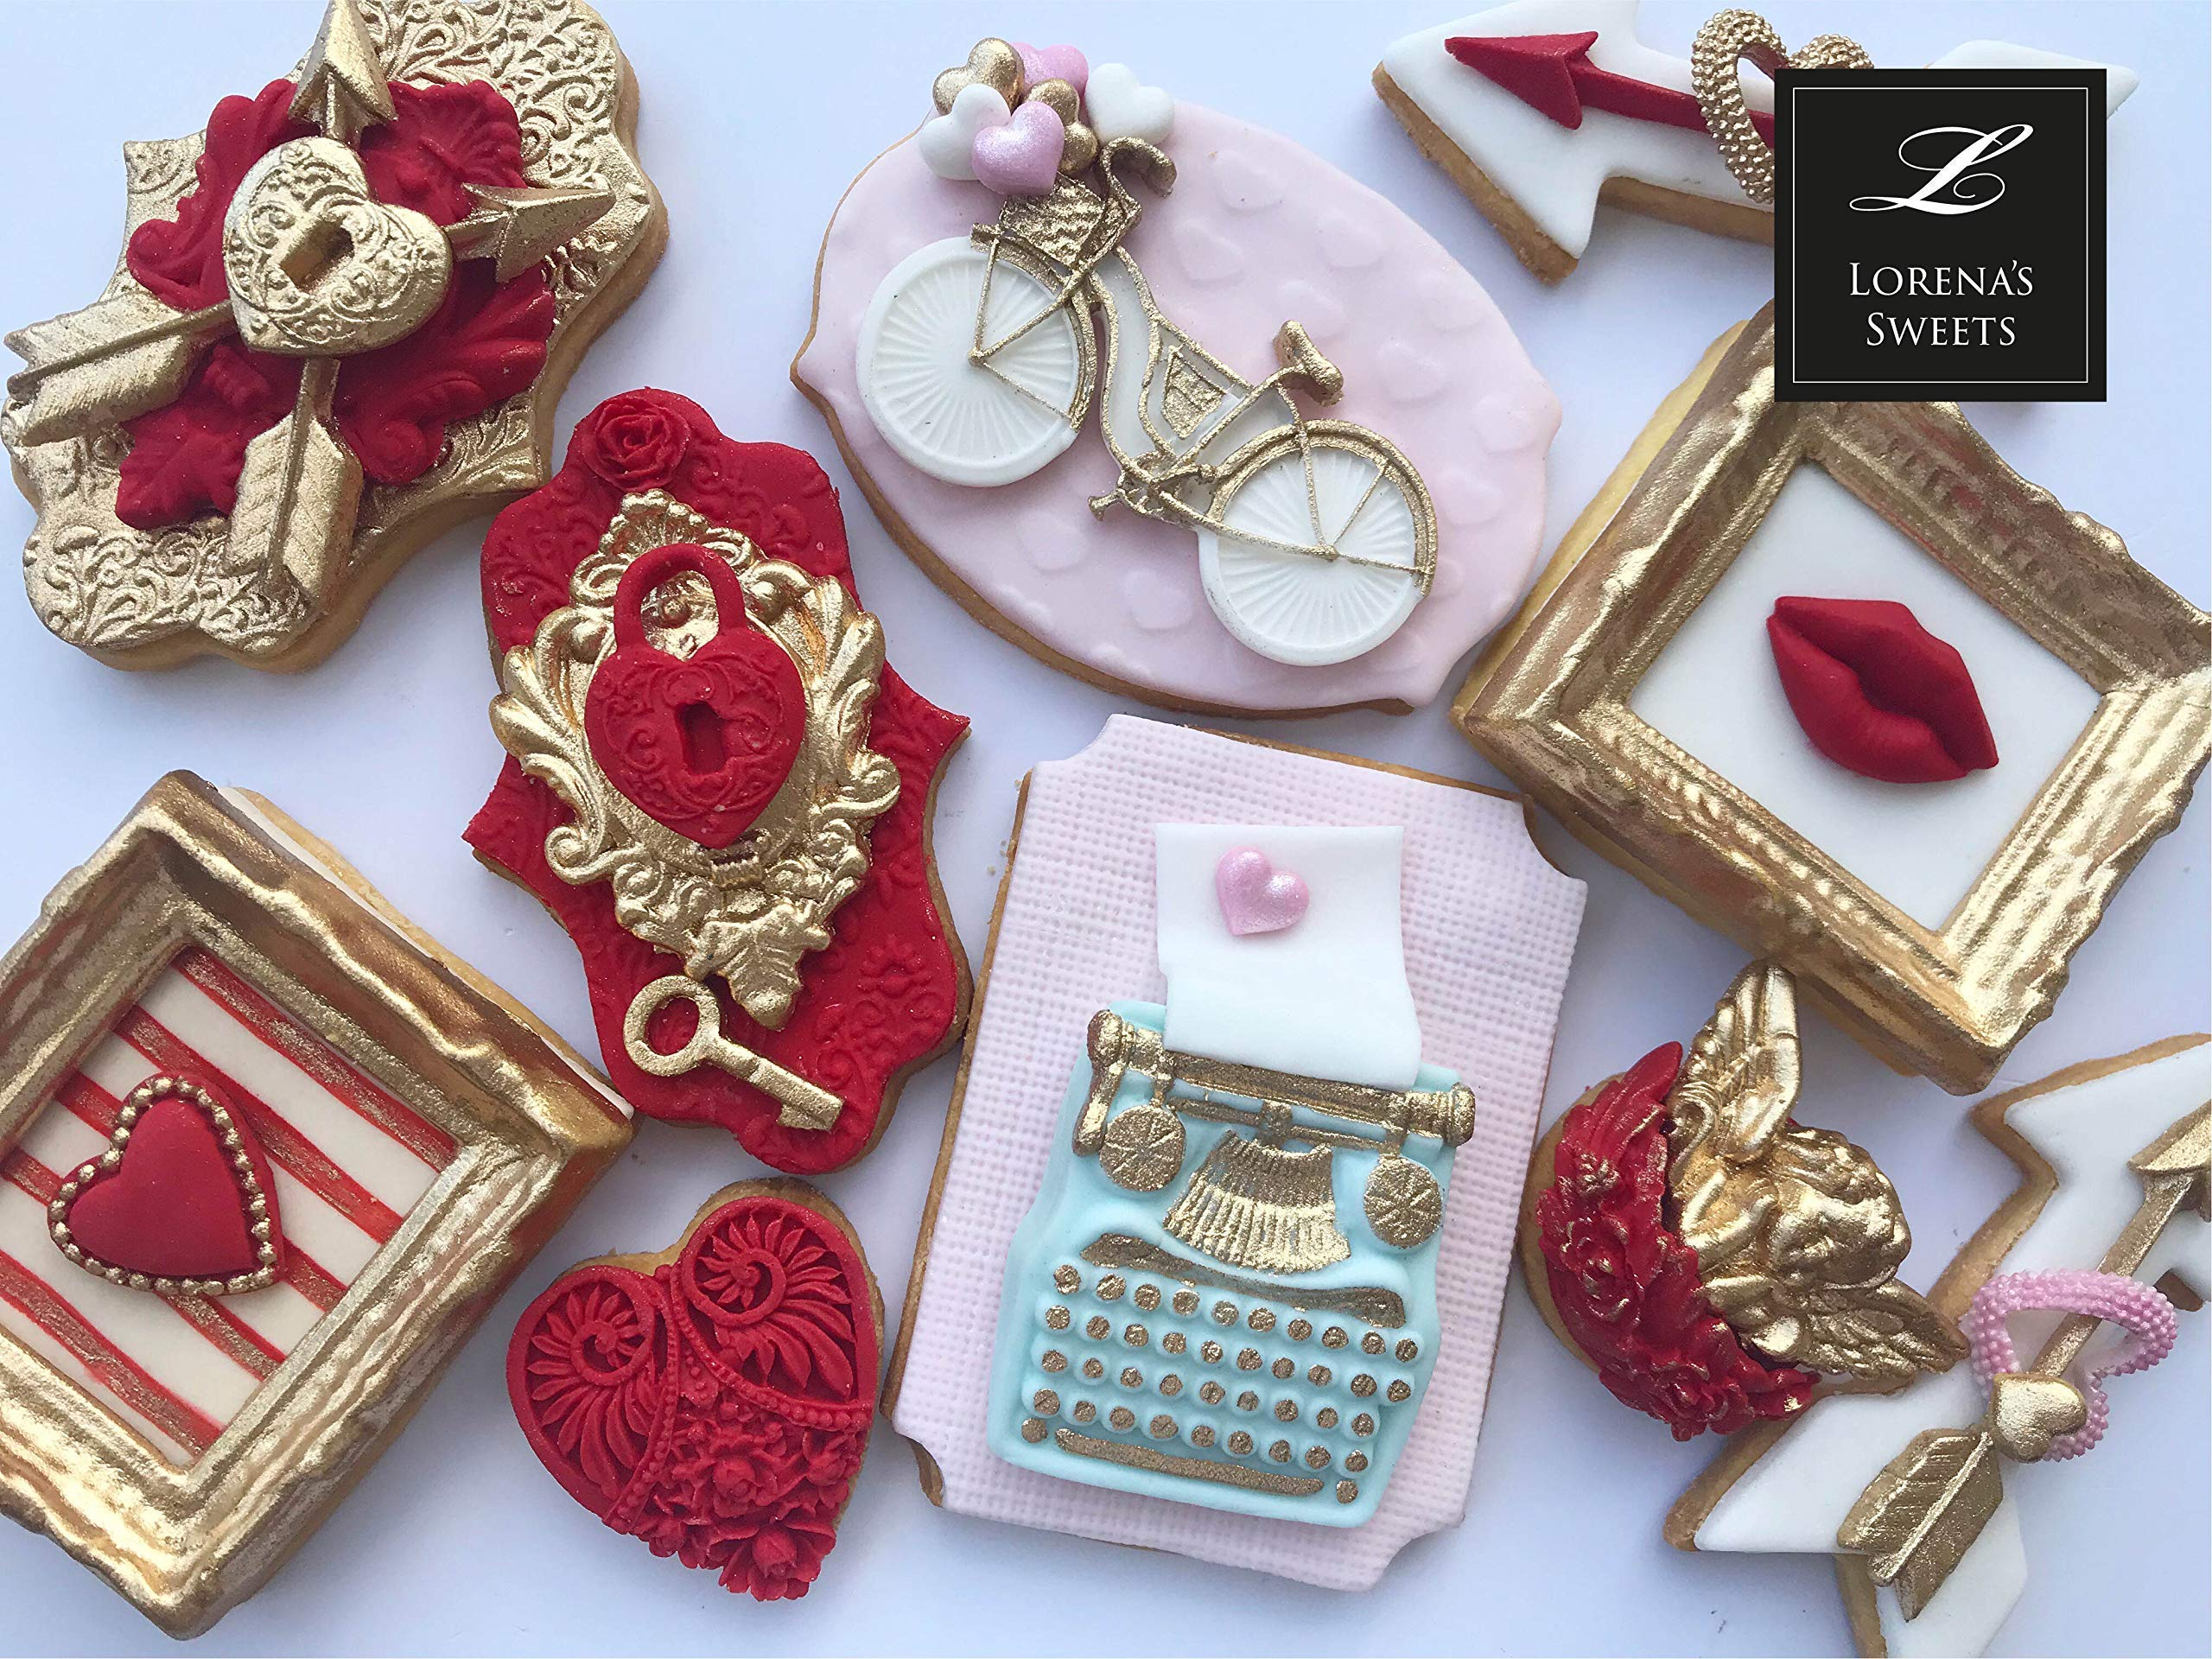 Lorena's Sweets Fondant Cookie kit Assortment Valentine's Pink by Lorena´s Sweets (Image #3)